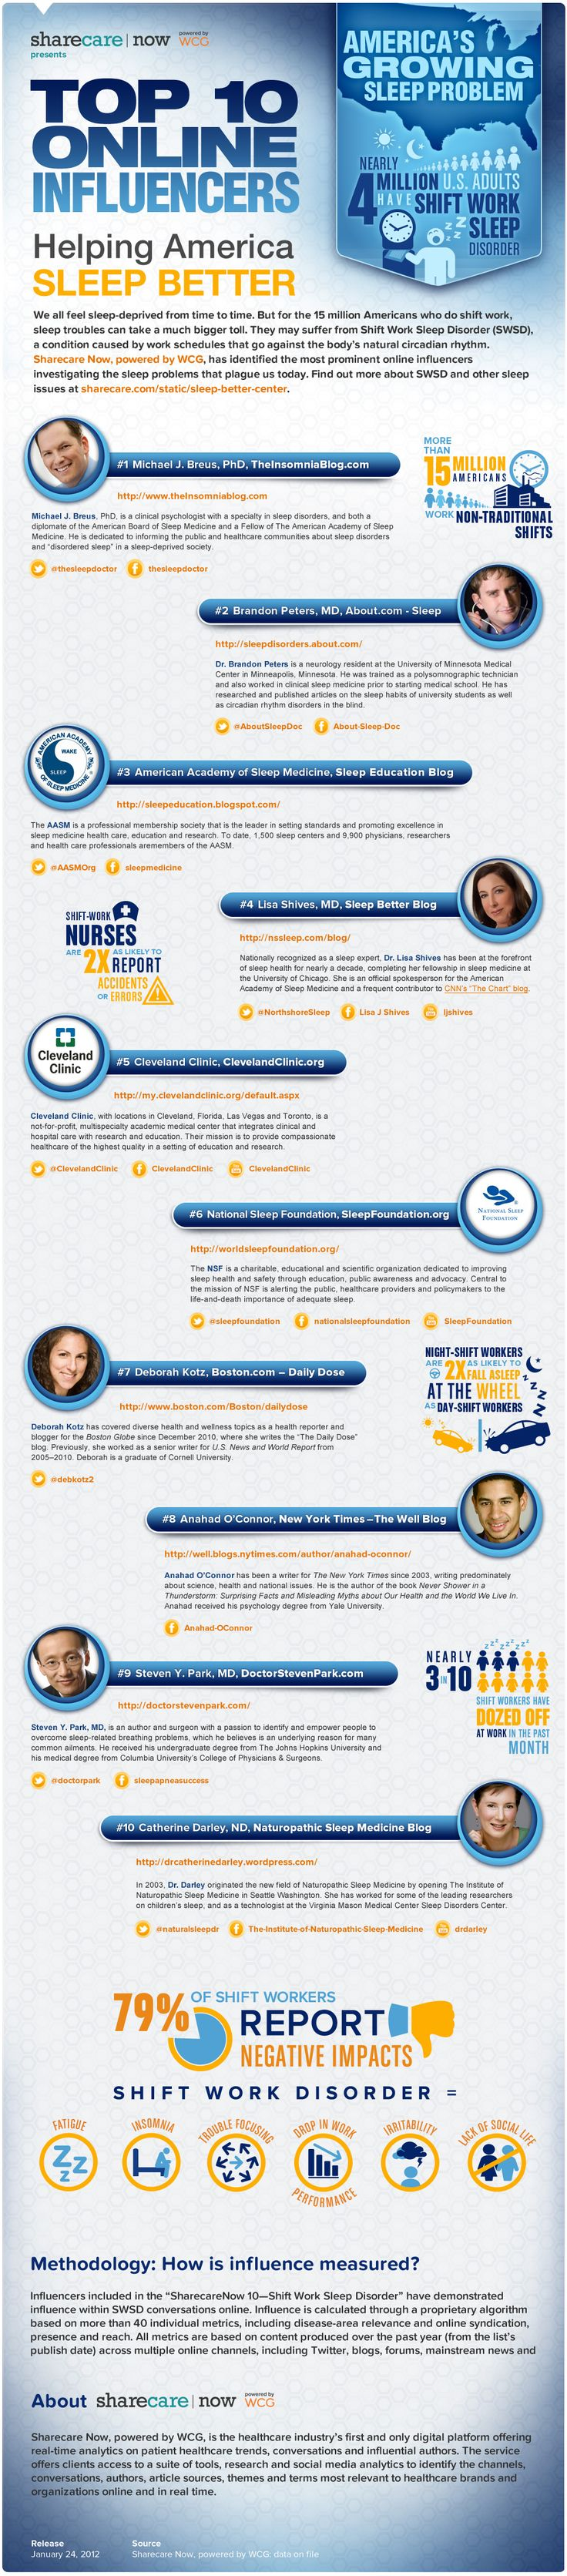 Top 10 Online Influencers helping America sleep better. #infographic